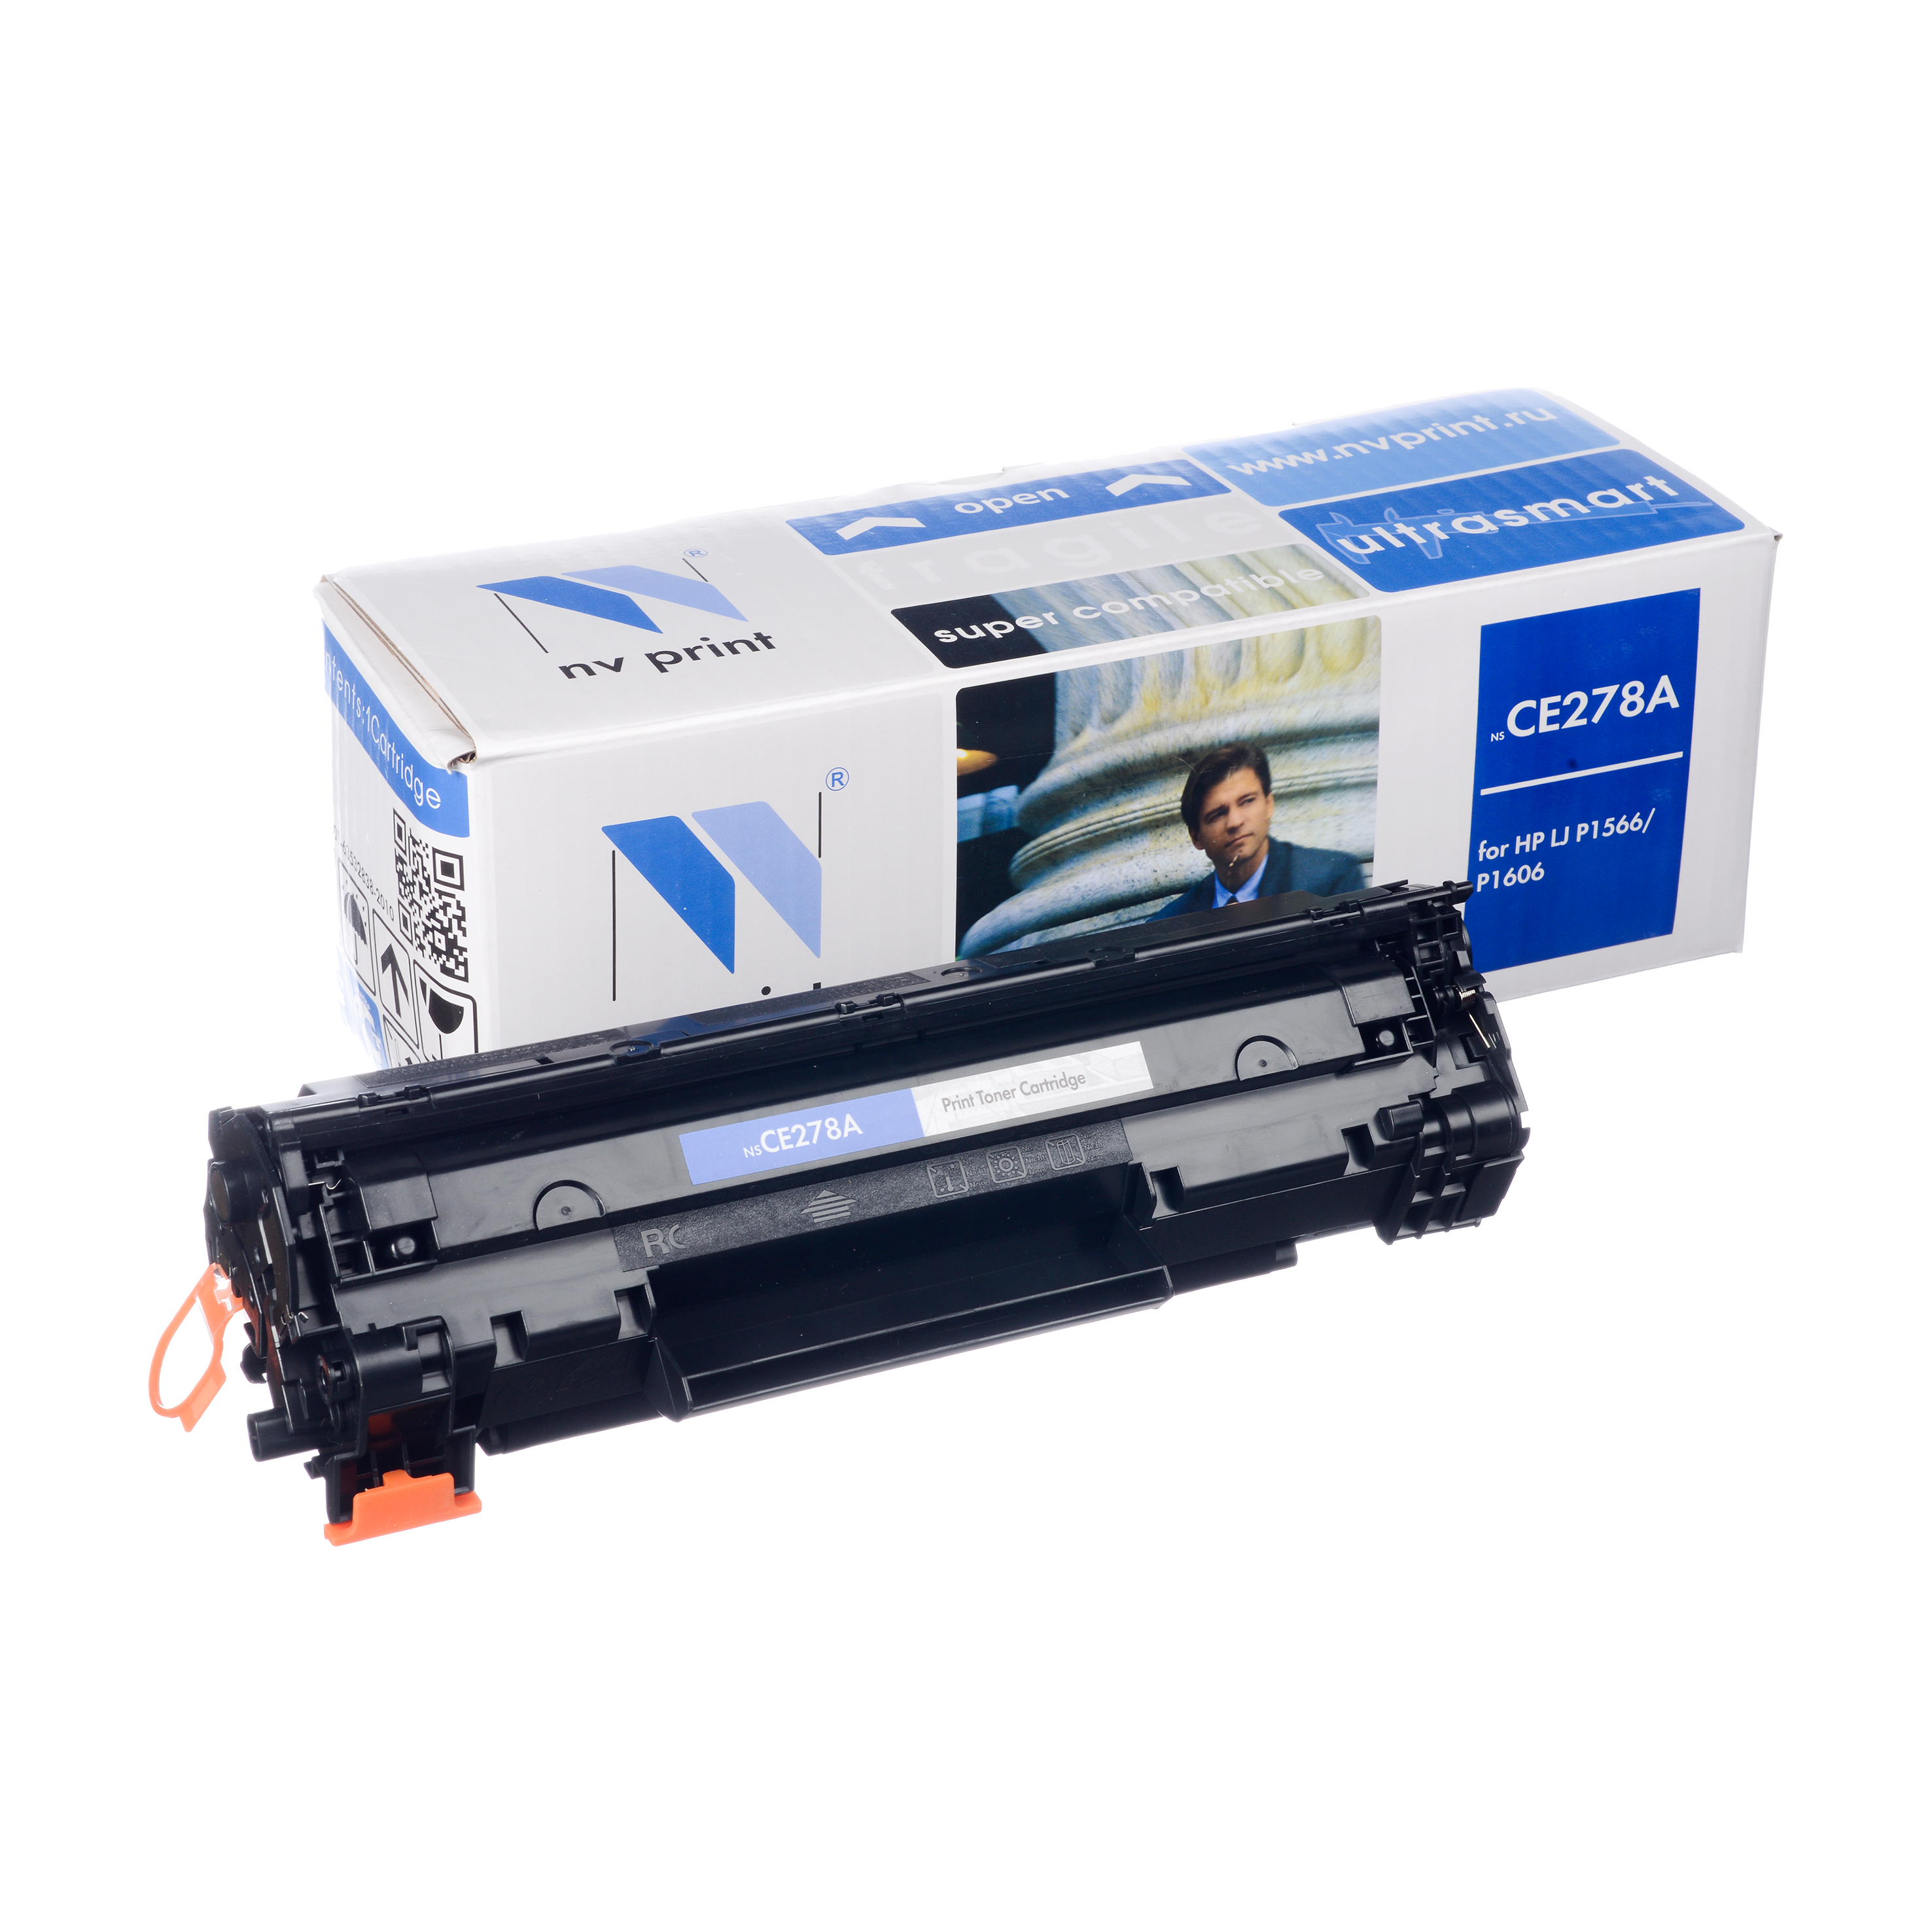 Картридж NV Print CE278A/Cartridge 728Картридж NV Print для HP LJ Р1566/Р1606W/M1536dnf MFP/Canon MF4580dn/4570dn/4550dn/4450/4430/4410Картридж NV Print для HP LJ Р1566/Р1606W/M1536dnf MFP/Canon MF4580dn/4570dn/4550dn/4450/4430/4410